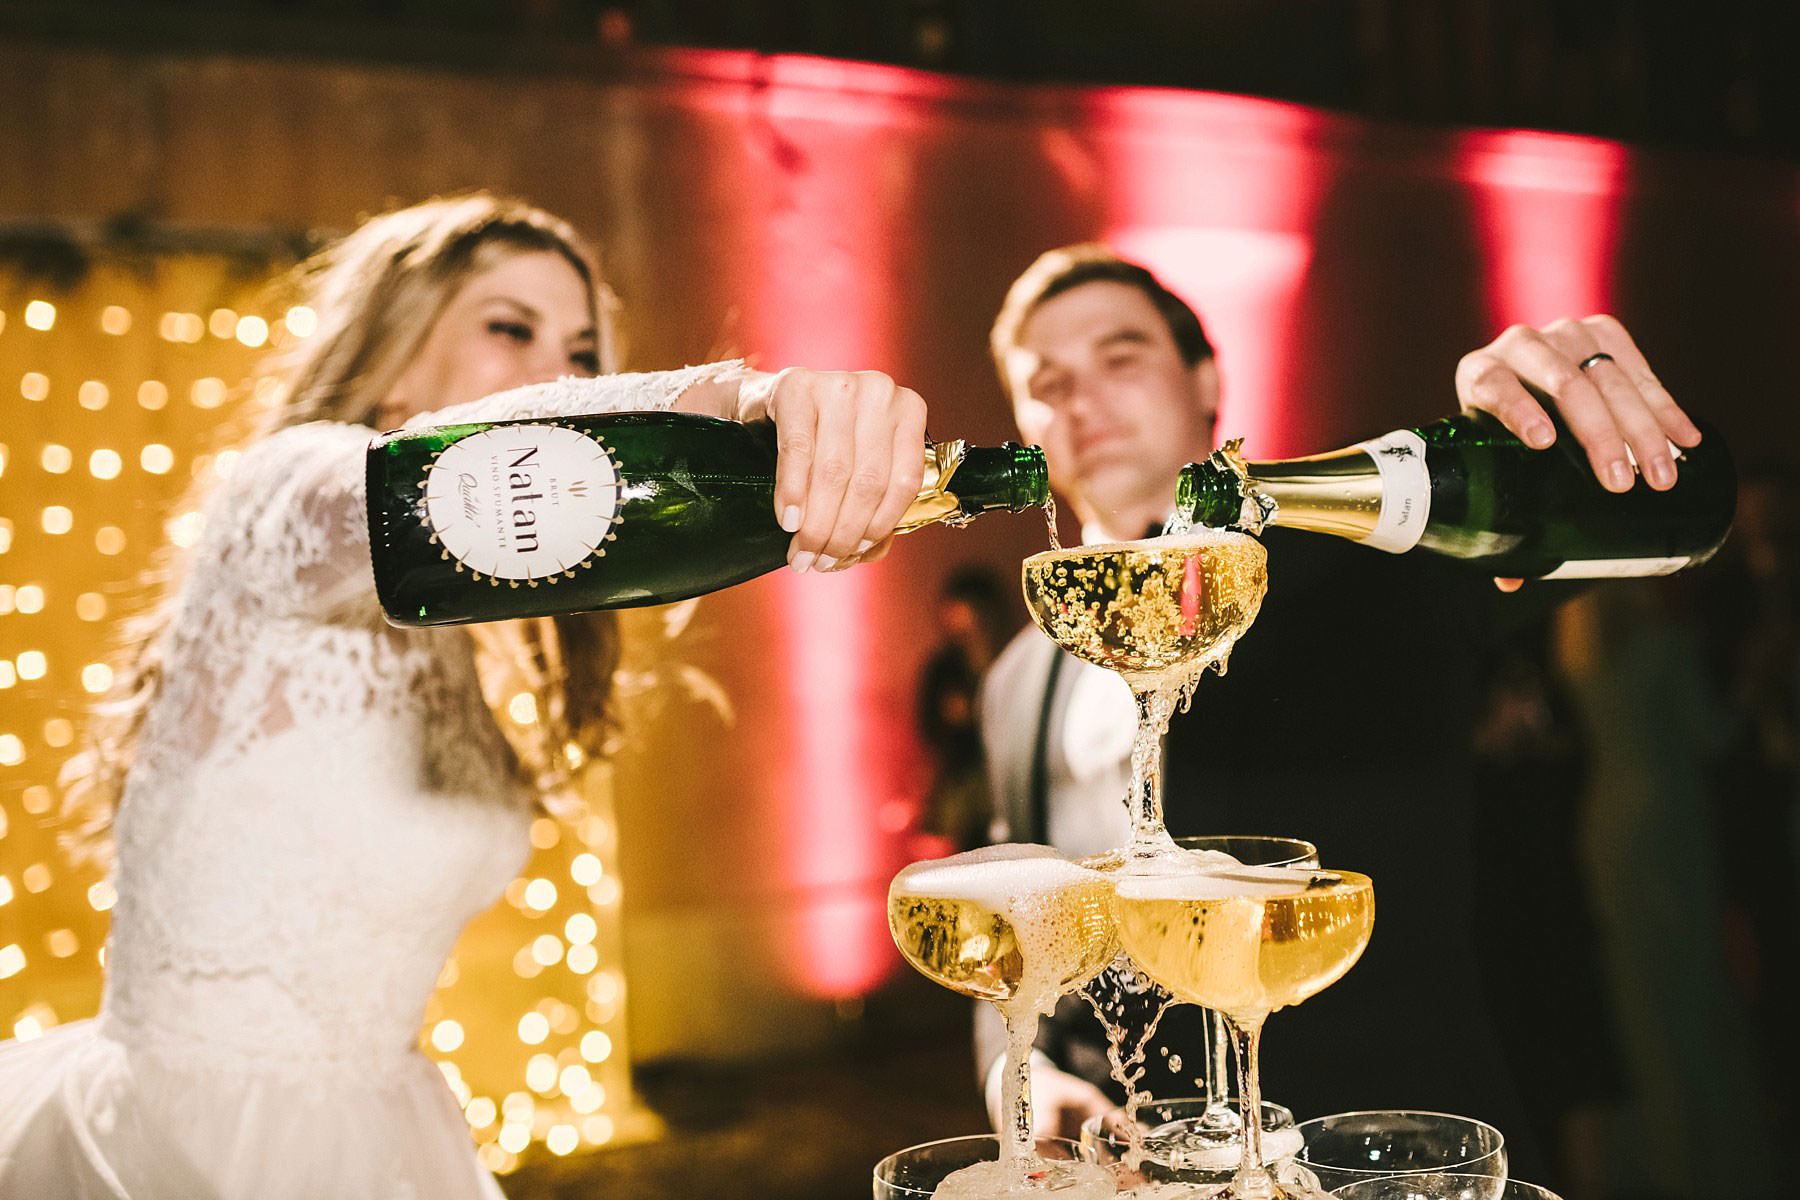 Bride and groom enjoy some time with the pyramid of champagne just before the cut of the cake